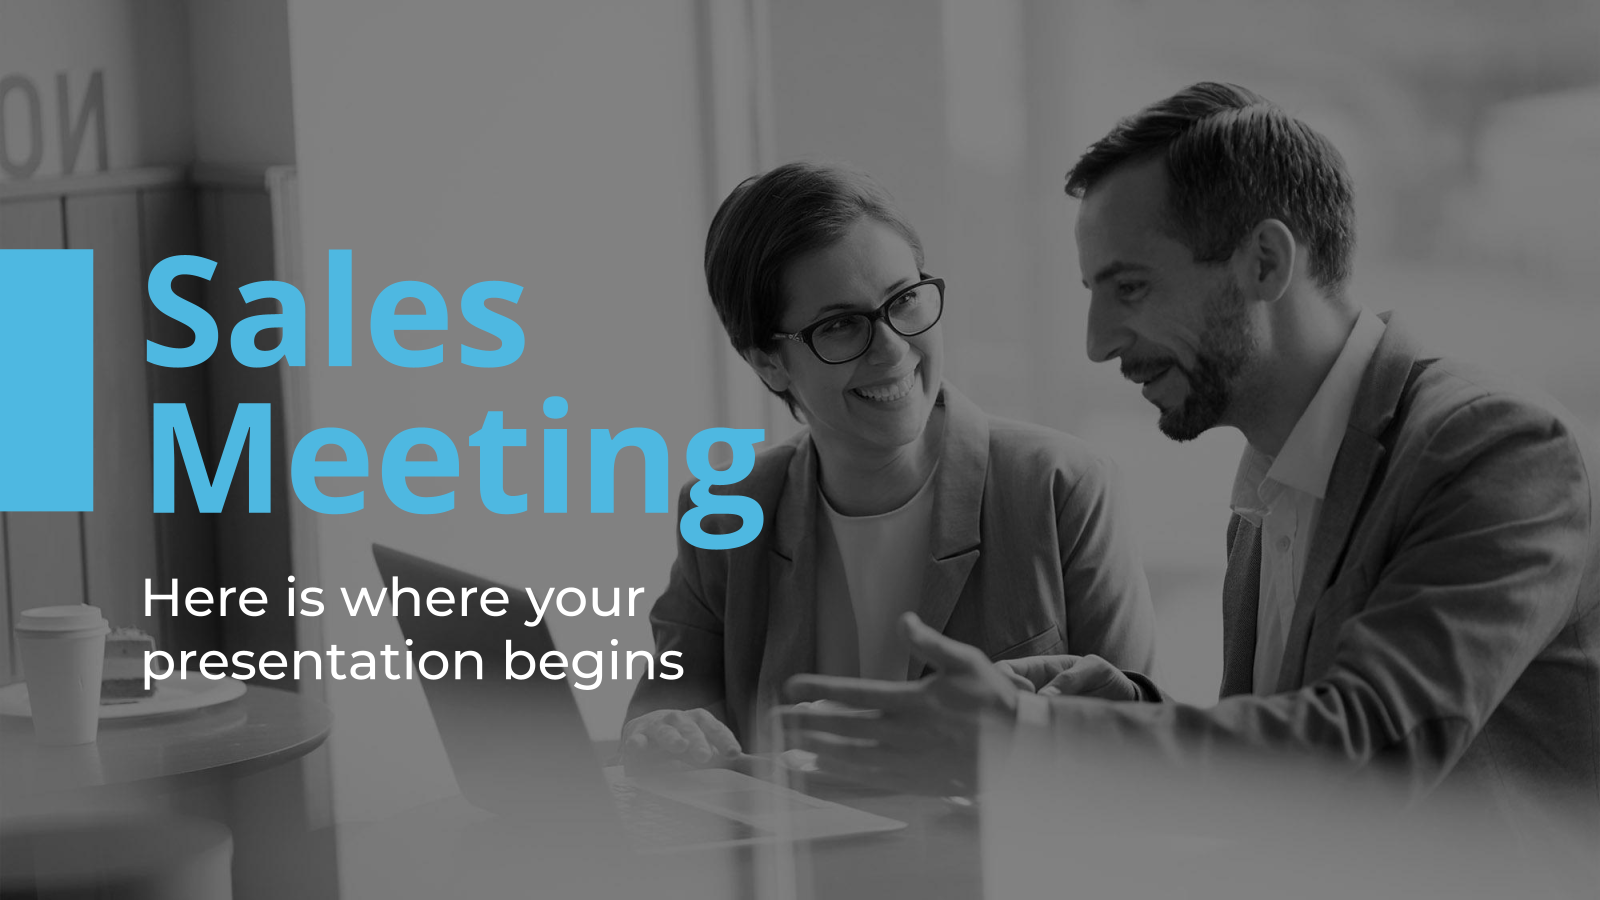 Sales Meeting presentation template